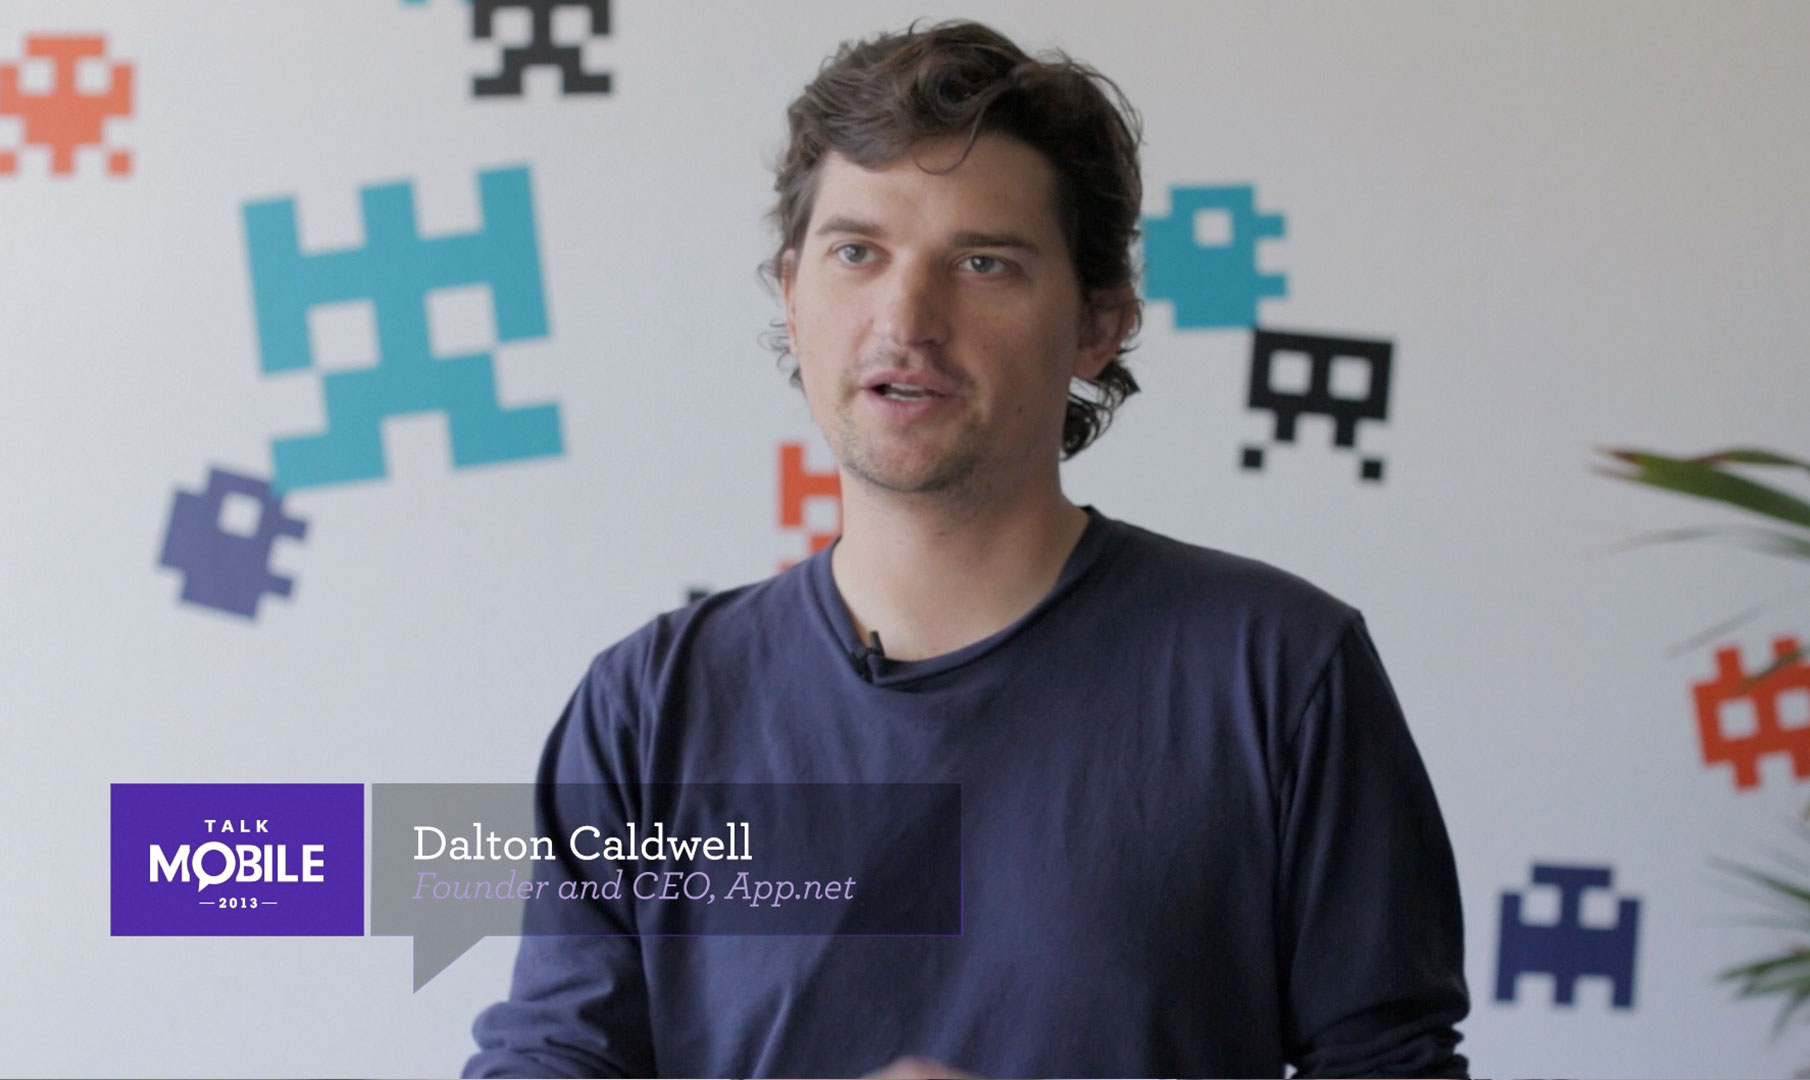 Dalton Caldwell on the future of the Cloud